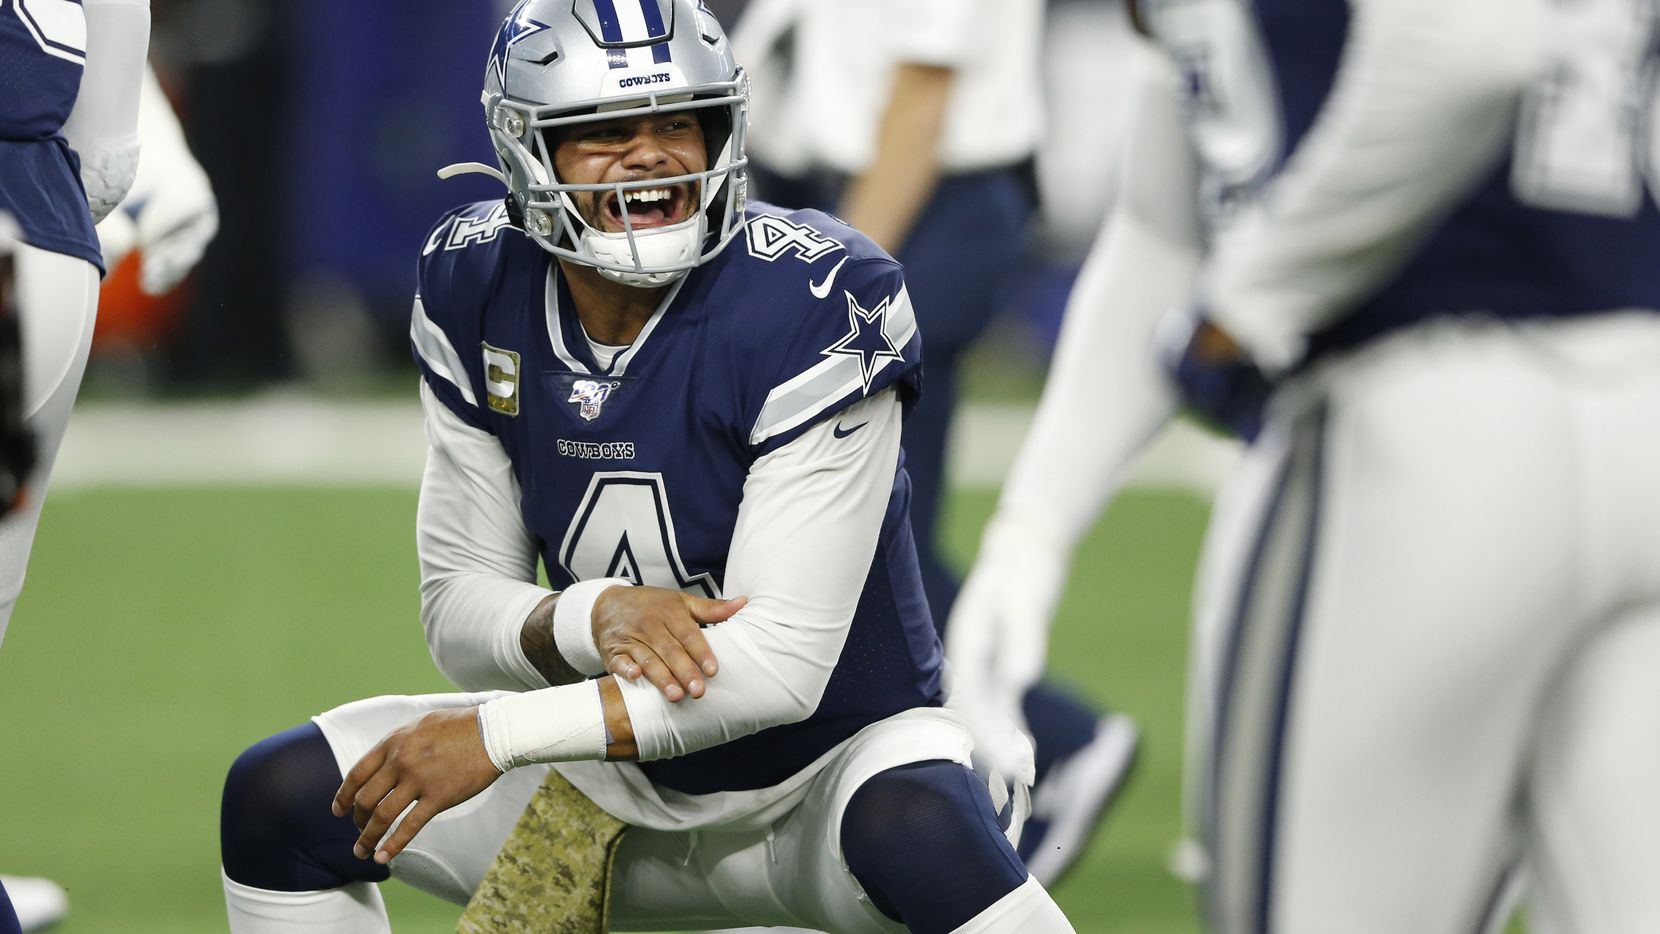 Dallas Cowboys quarterback Dak Prescott (4) greets his teammates before a game against the Minnesota Vikings in Arlington, Texas on Sunday, November 10, 2019. (Vernon Bryant/The Dallas Morning News)